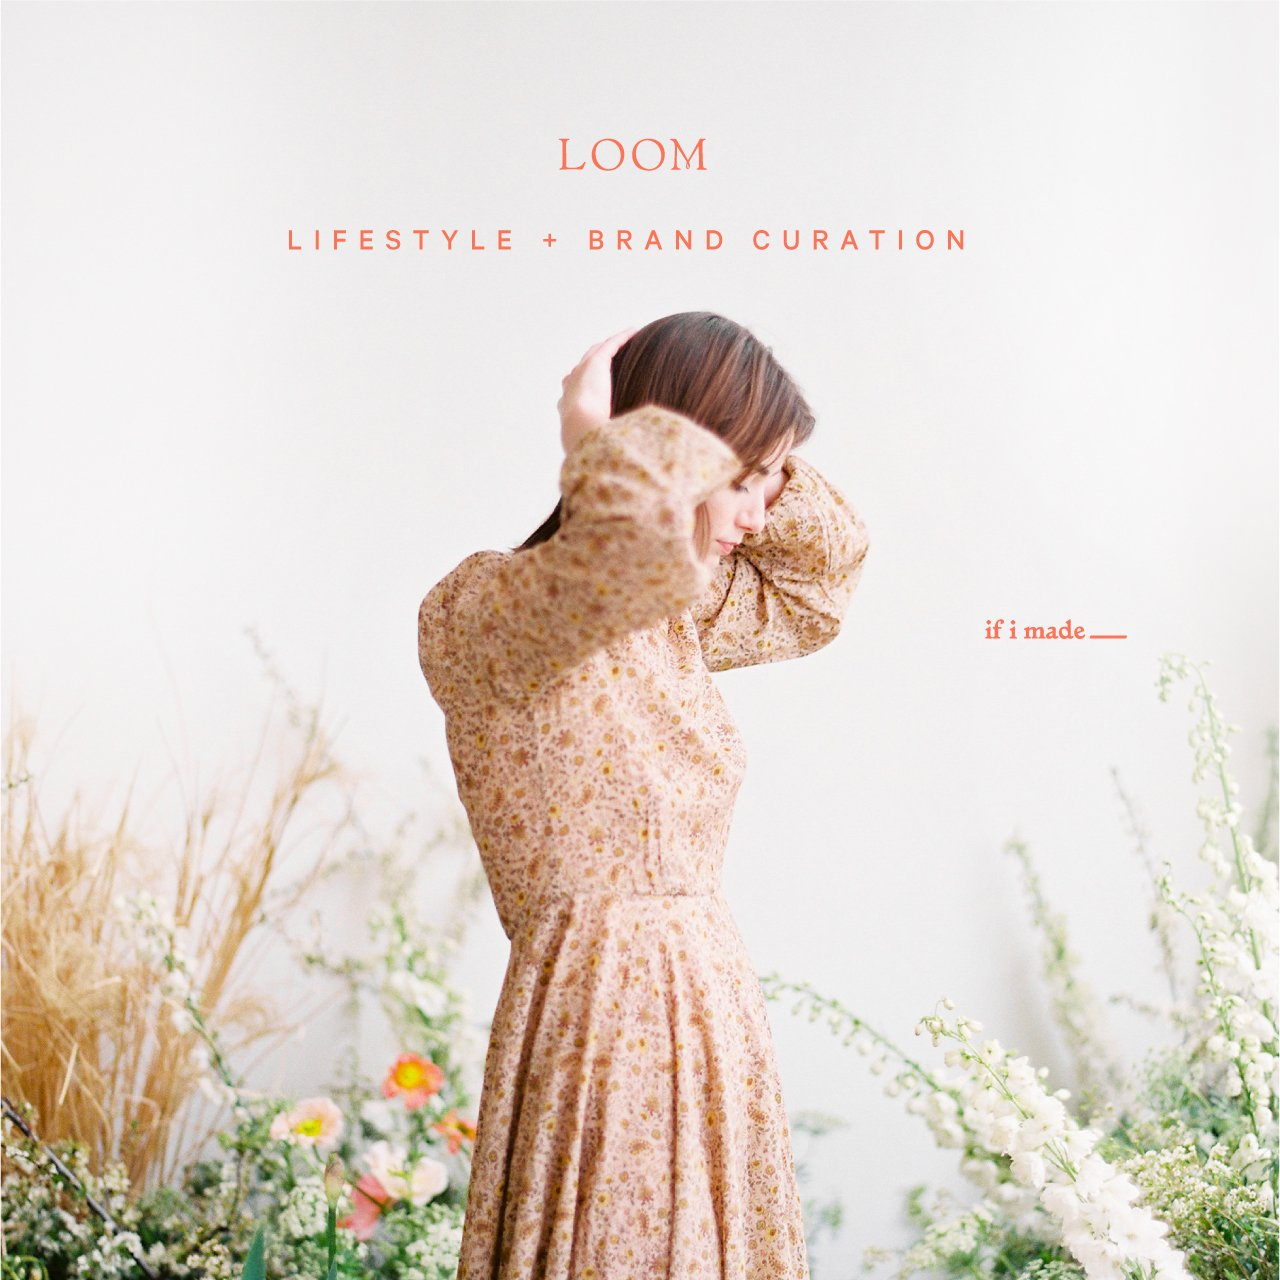 New Sale Payment Plan: Loom: Lifestyle and Brand Curation- 10 Monthly Payments of $99